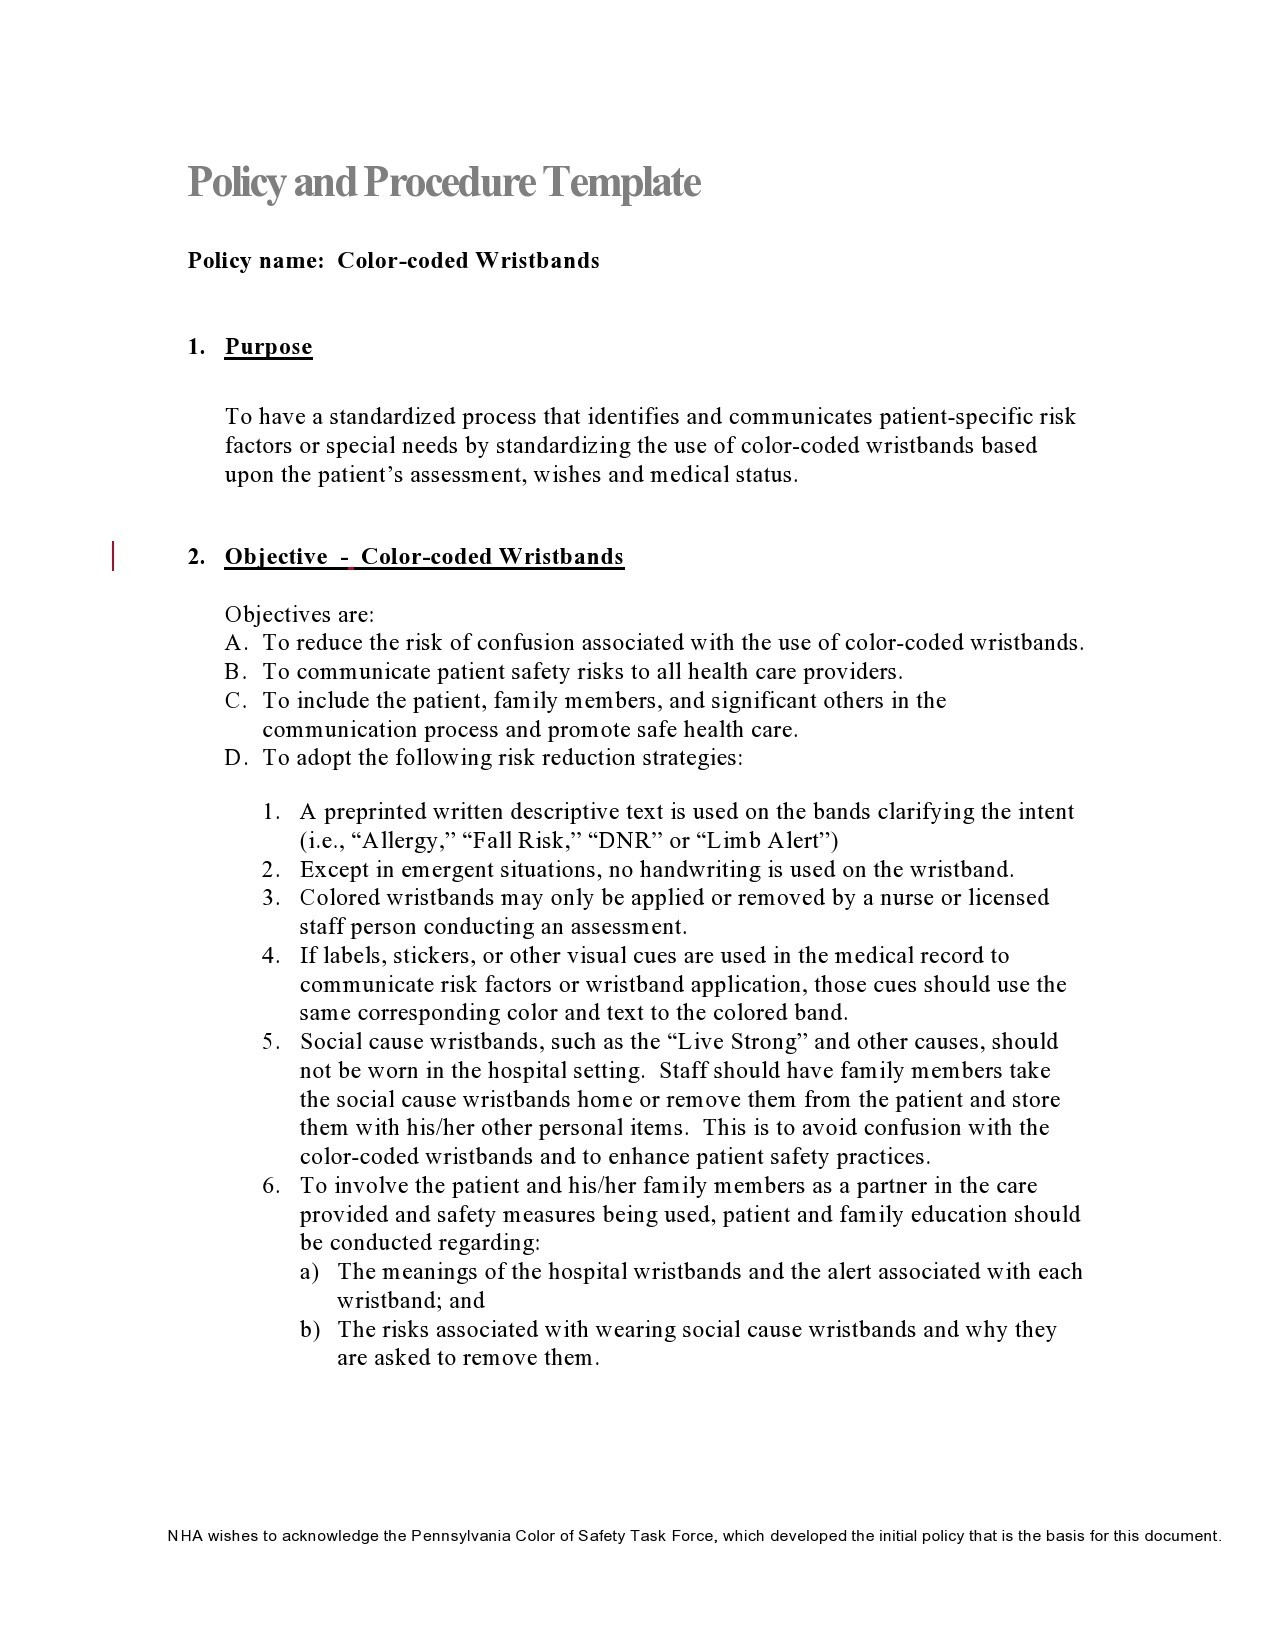 Free policy and procedure template 06